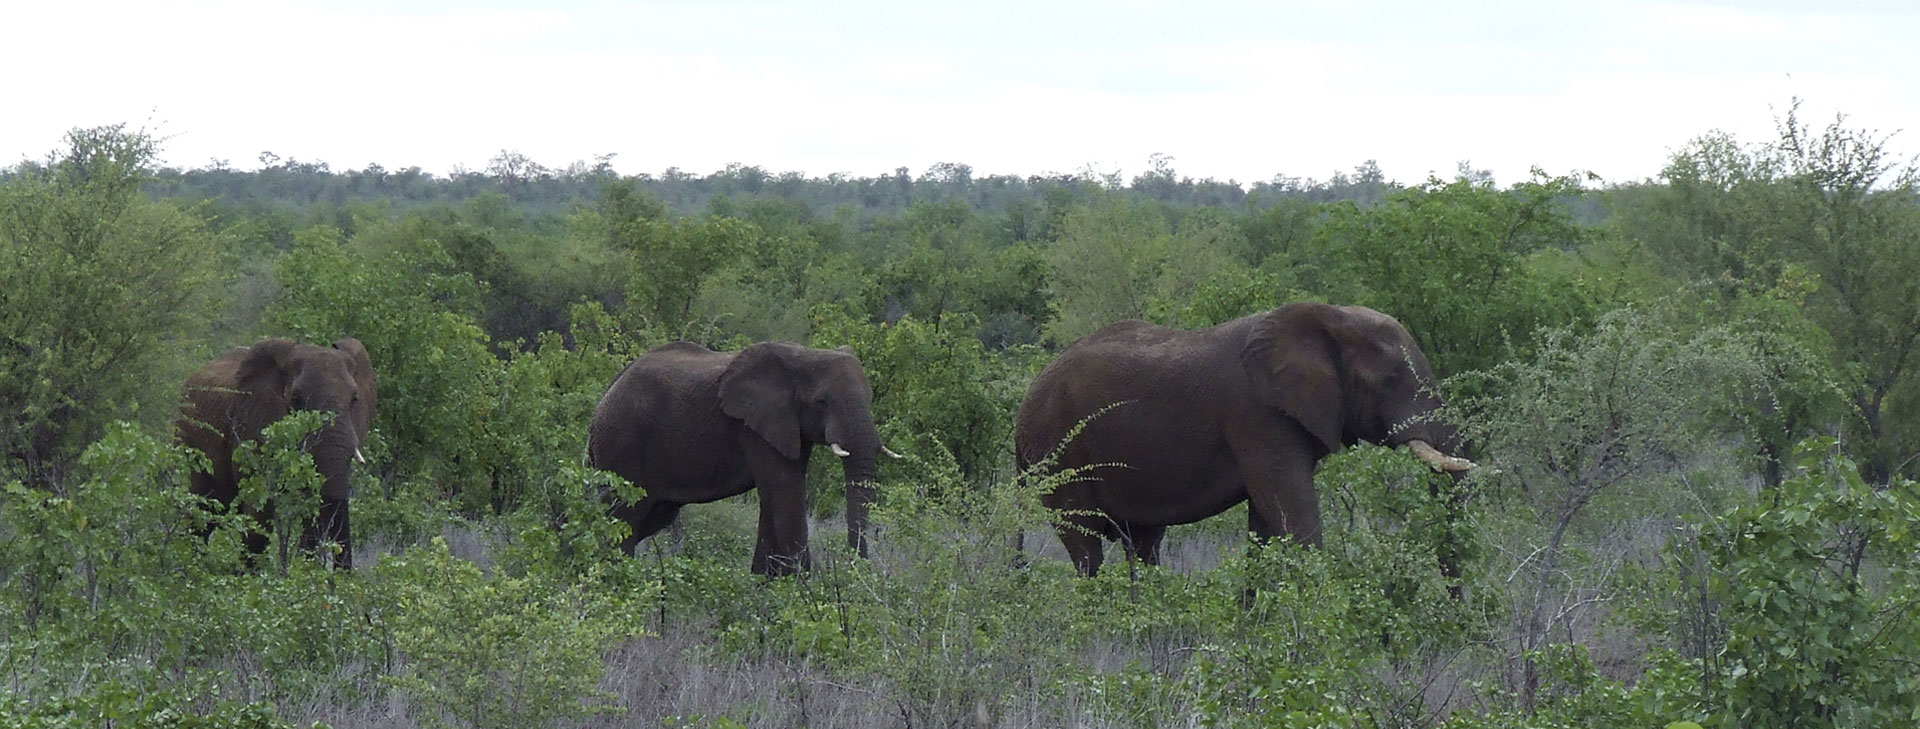 Elephants belong in South Africa's Kruger National Park. They attract tourists and create important economic advantages